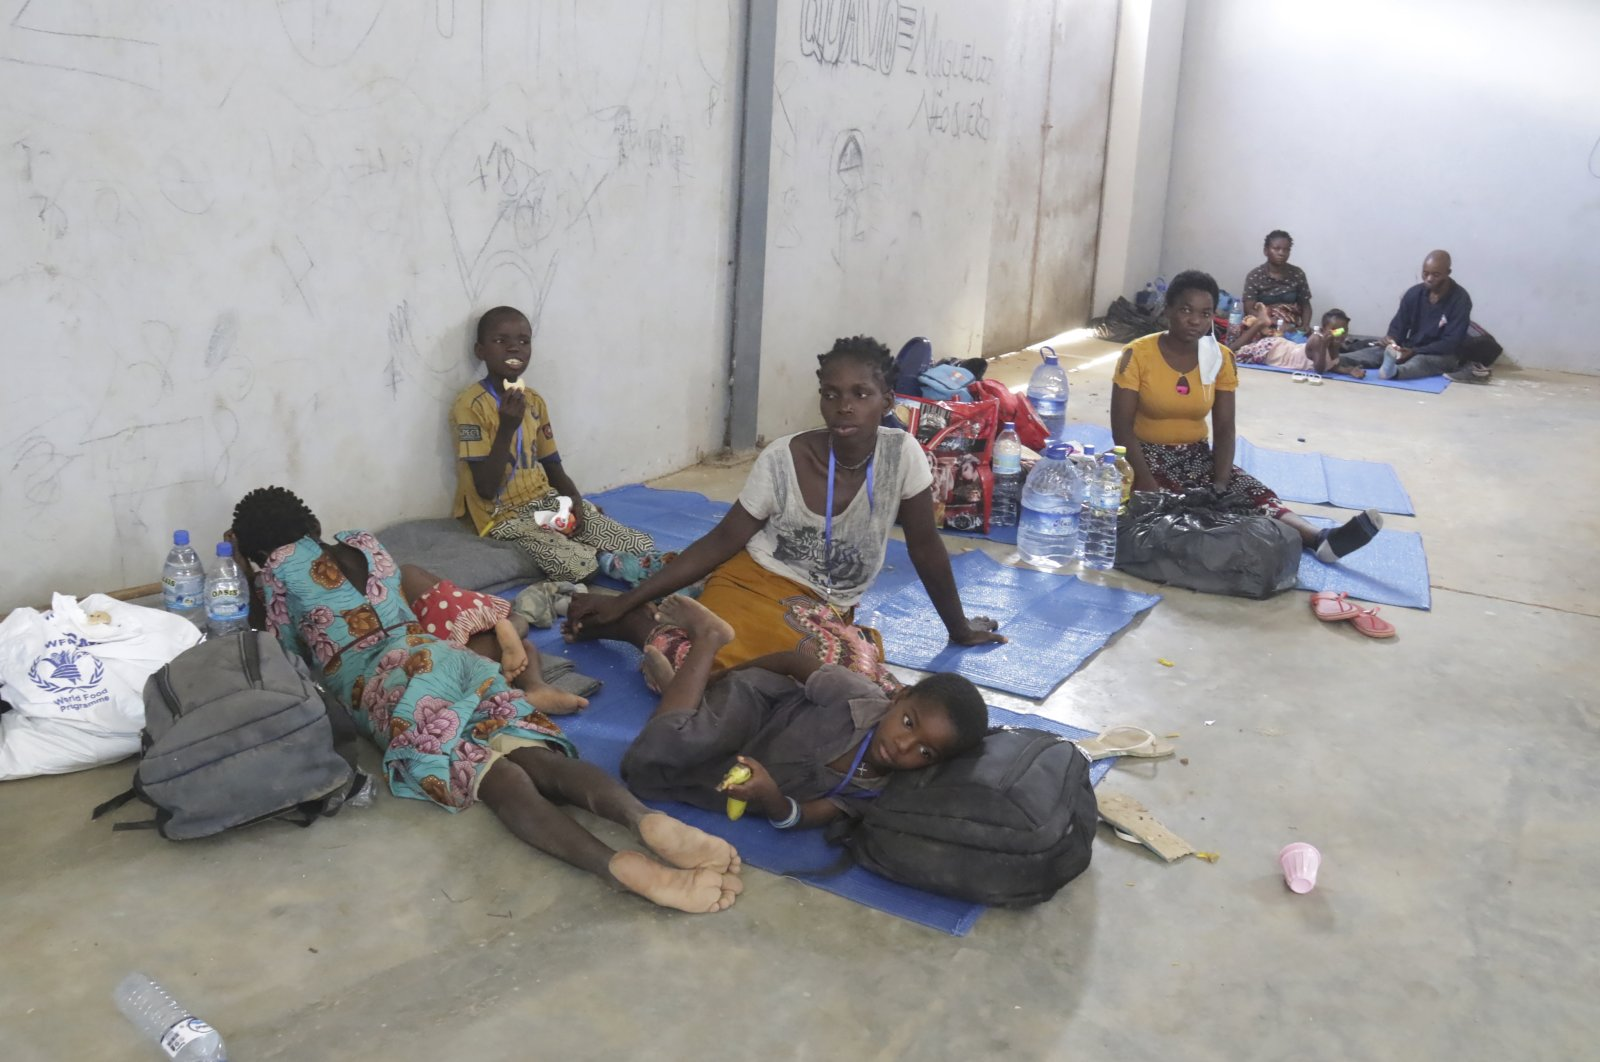 Refugees seek shelter at a center after fleeing attacks in Palma in northern Mozambique, in Afungi, Mozambique, April 2, 2021. (AP Photo)